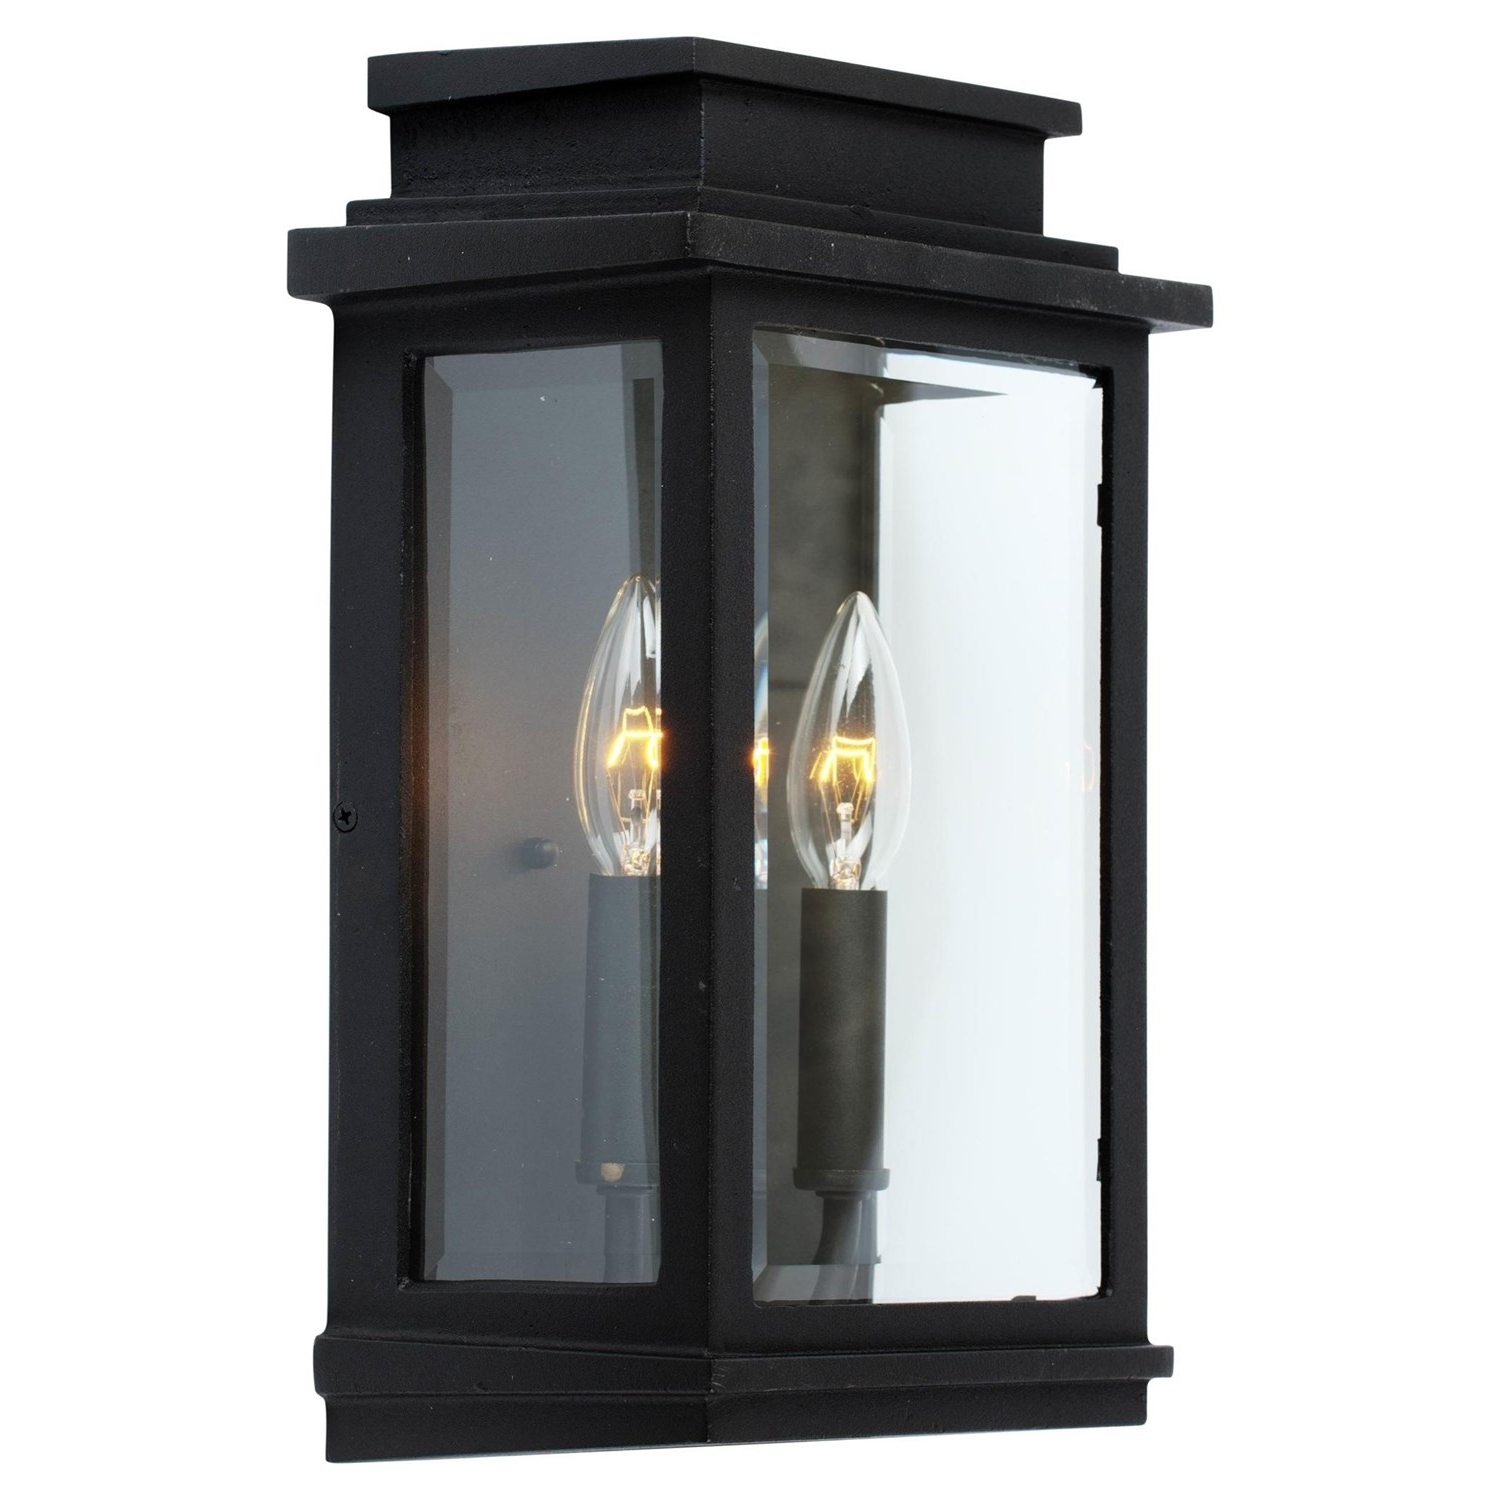 Trendy Artcraft Ac8391 Fremont 13 1 2 2 Light Outdoor Wall Sconce With Regard To Arts And Crafts Outdoor Wall Lighting (View 15 of 20)